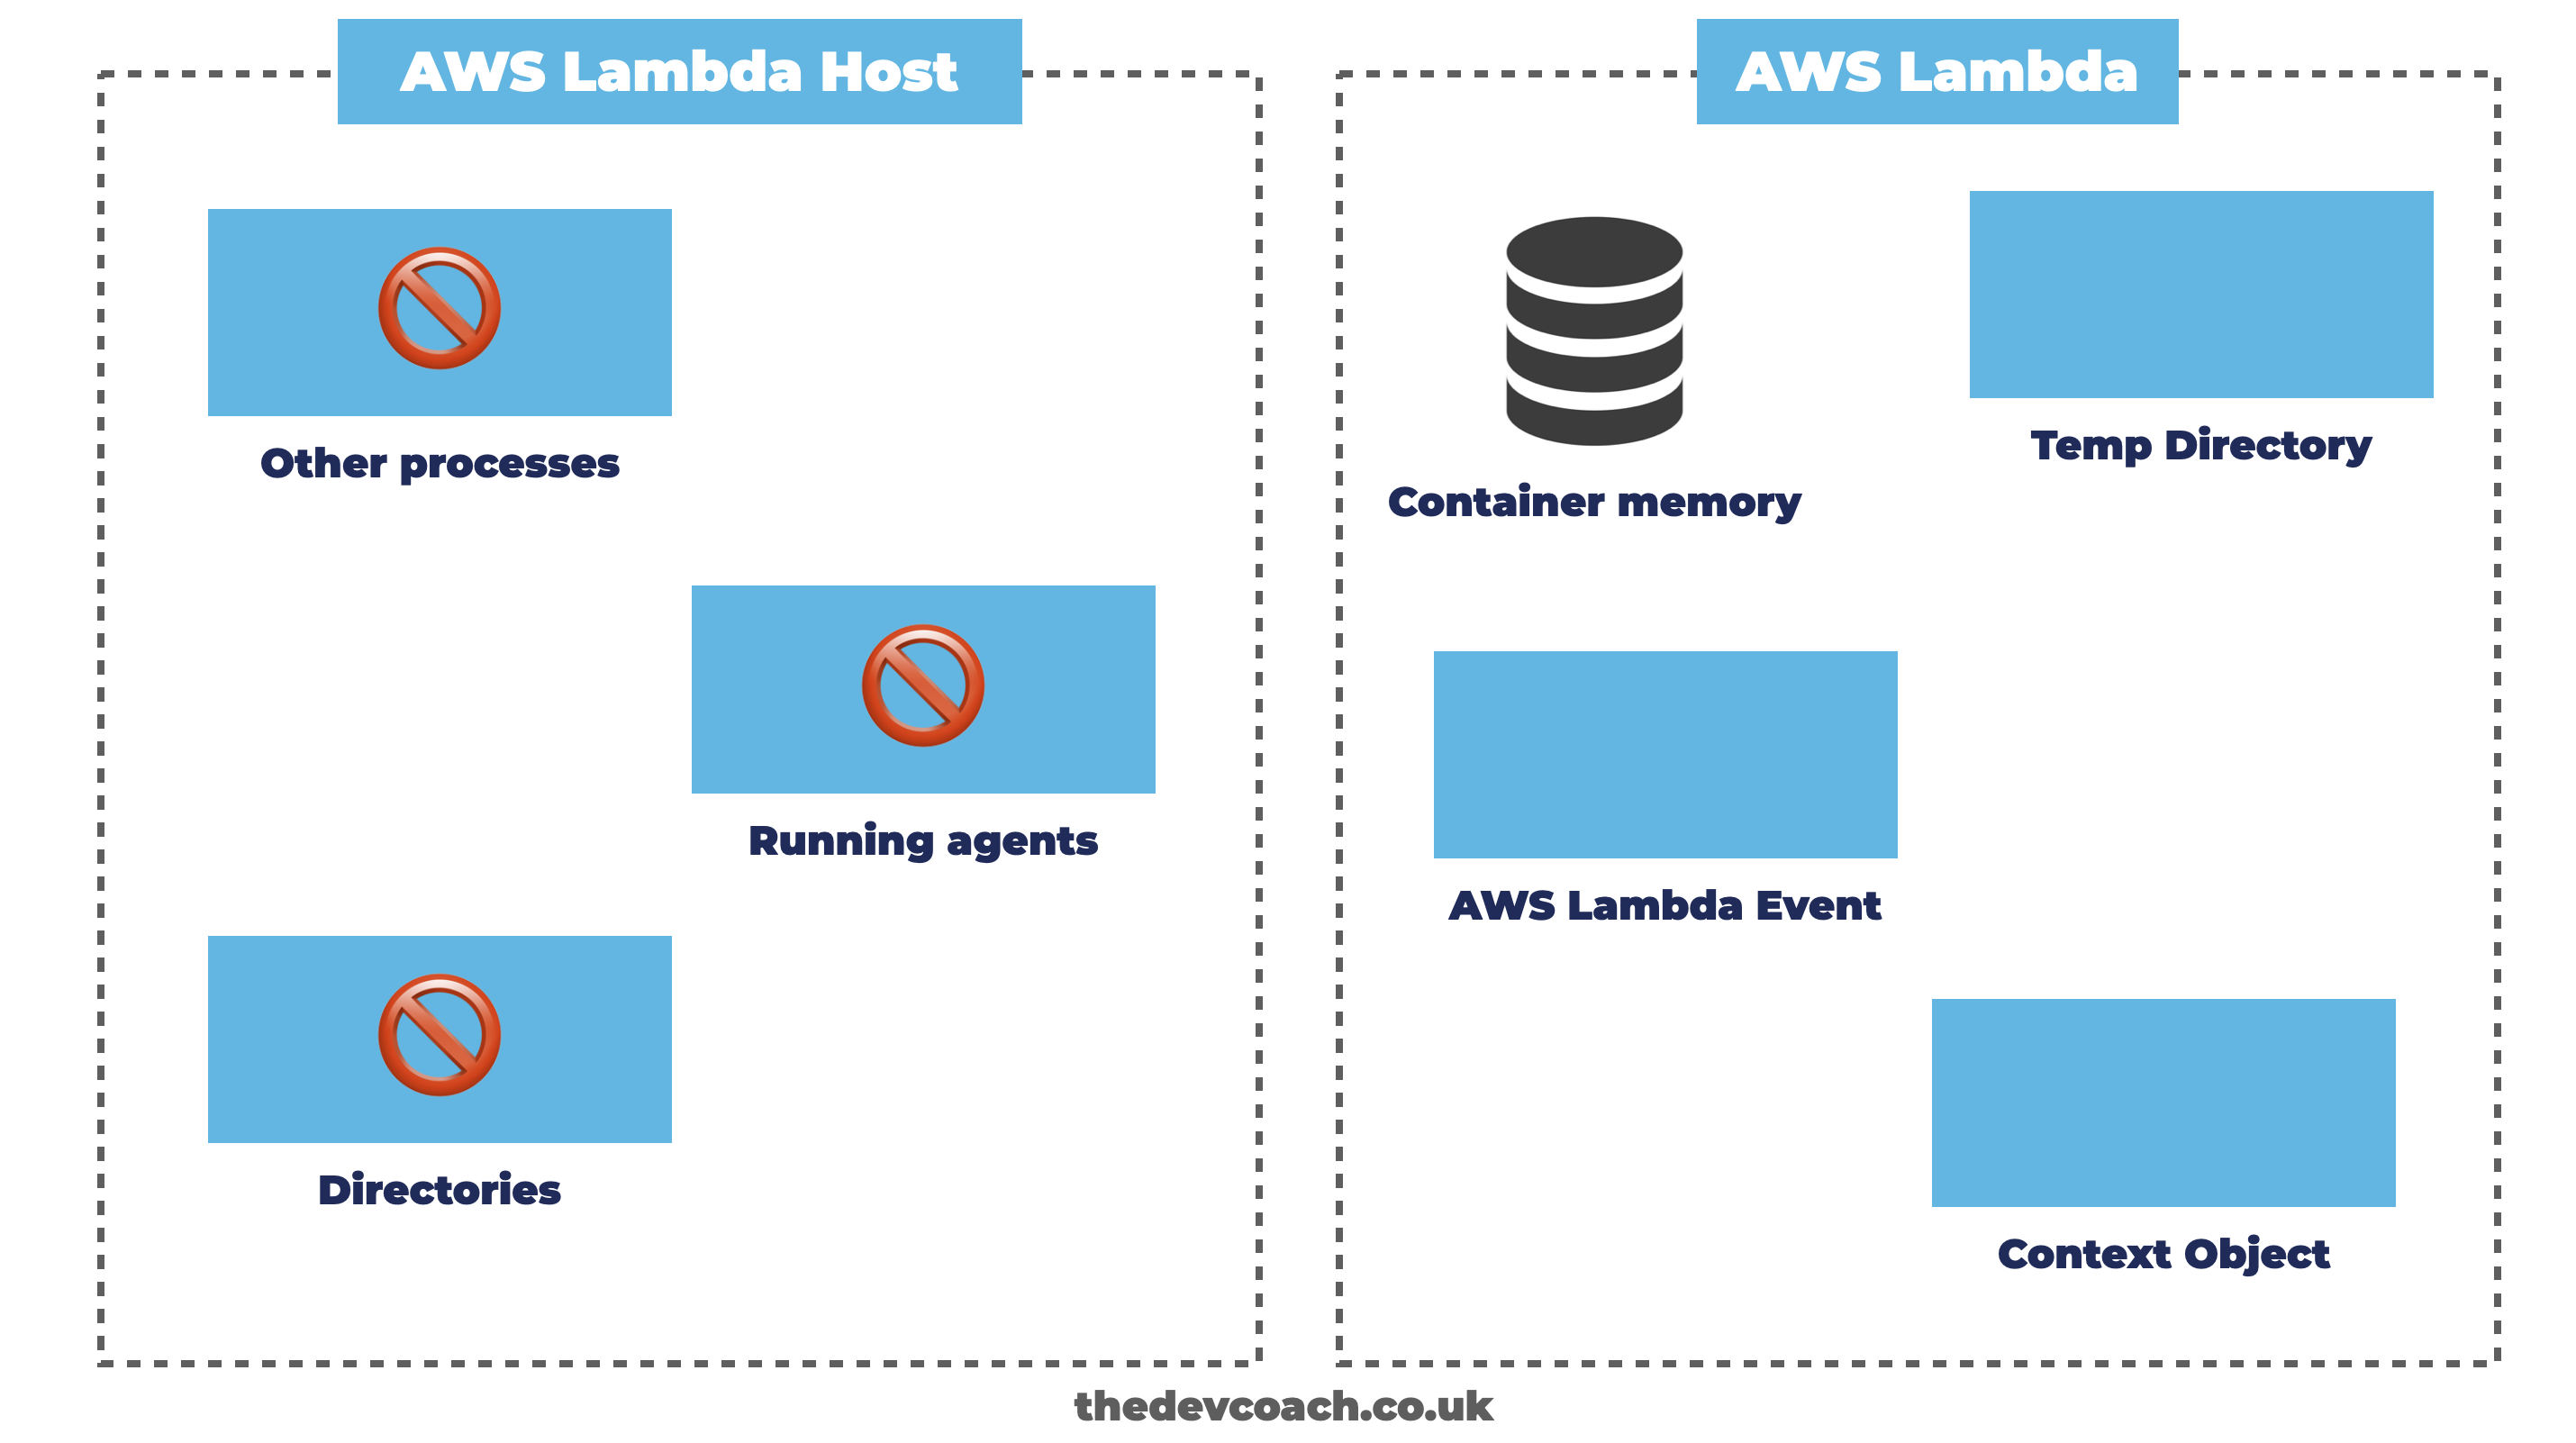 What You Can Access In AWS Lambda